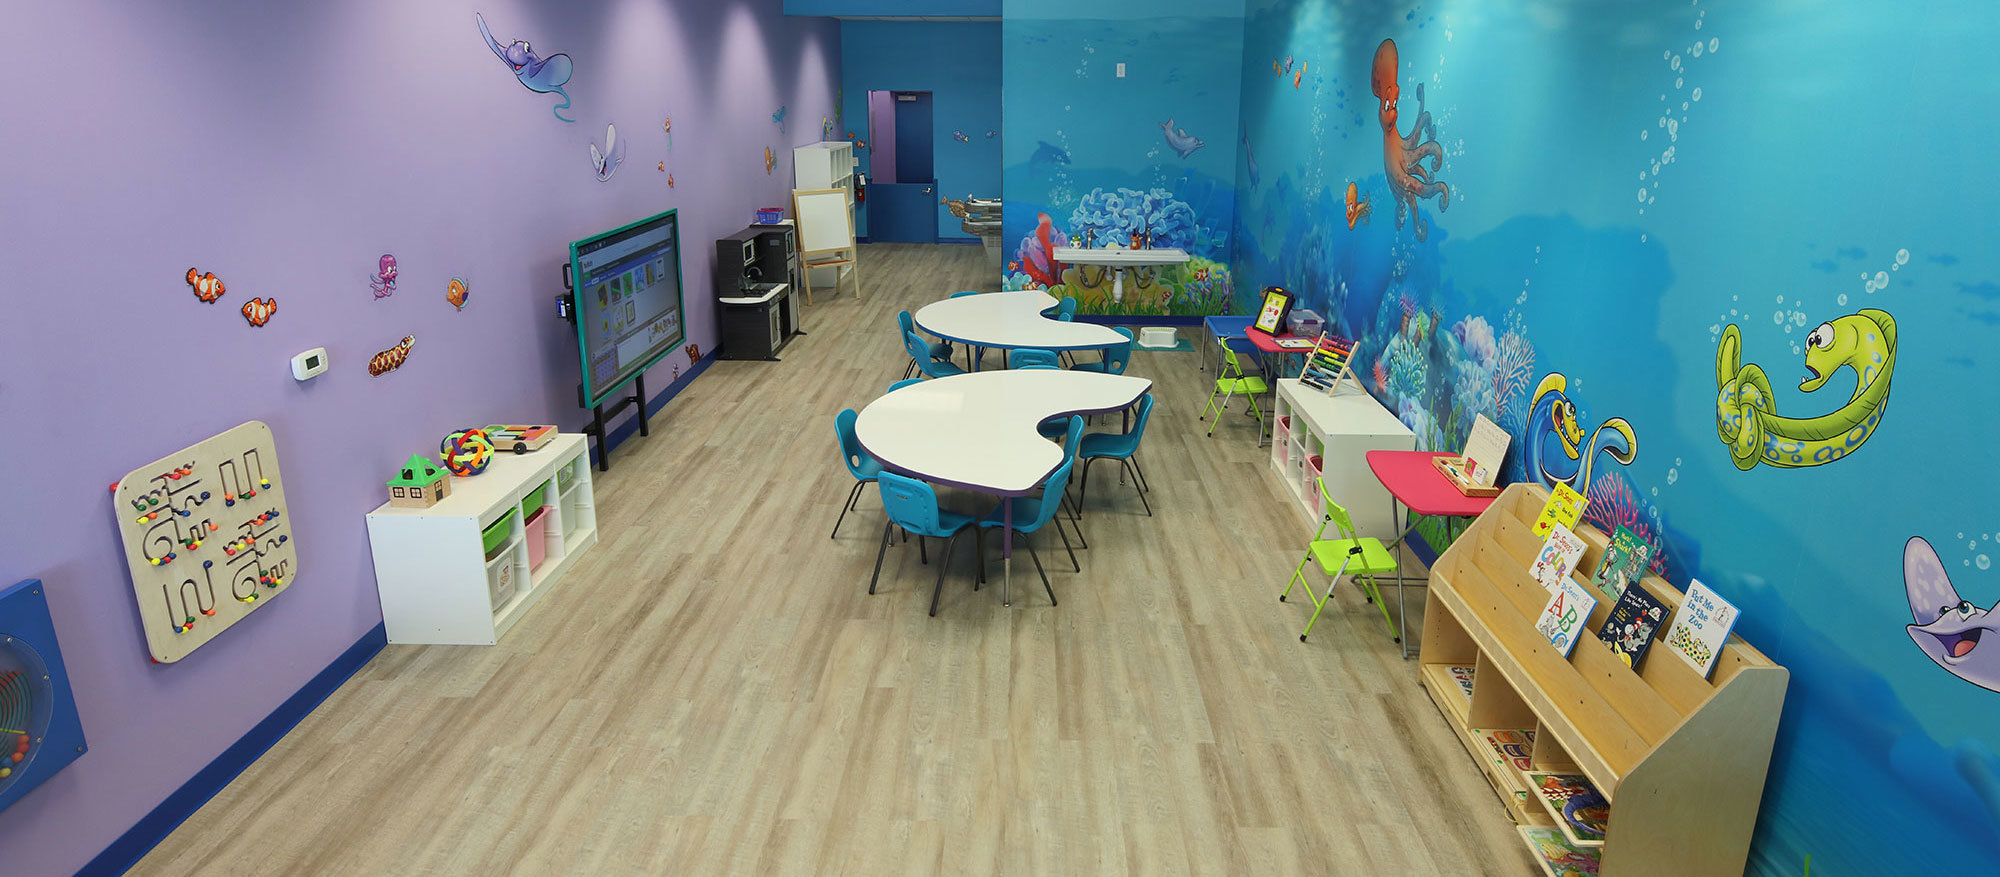 Undersea Themed Environment at Ashley's Playhouse